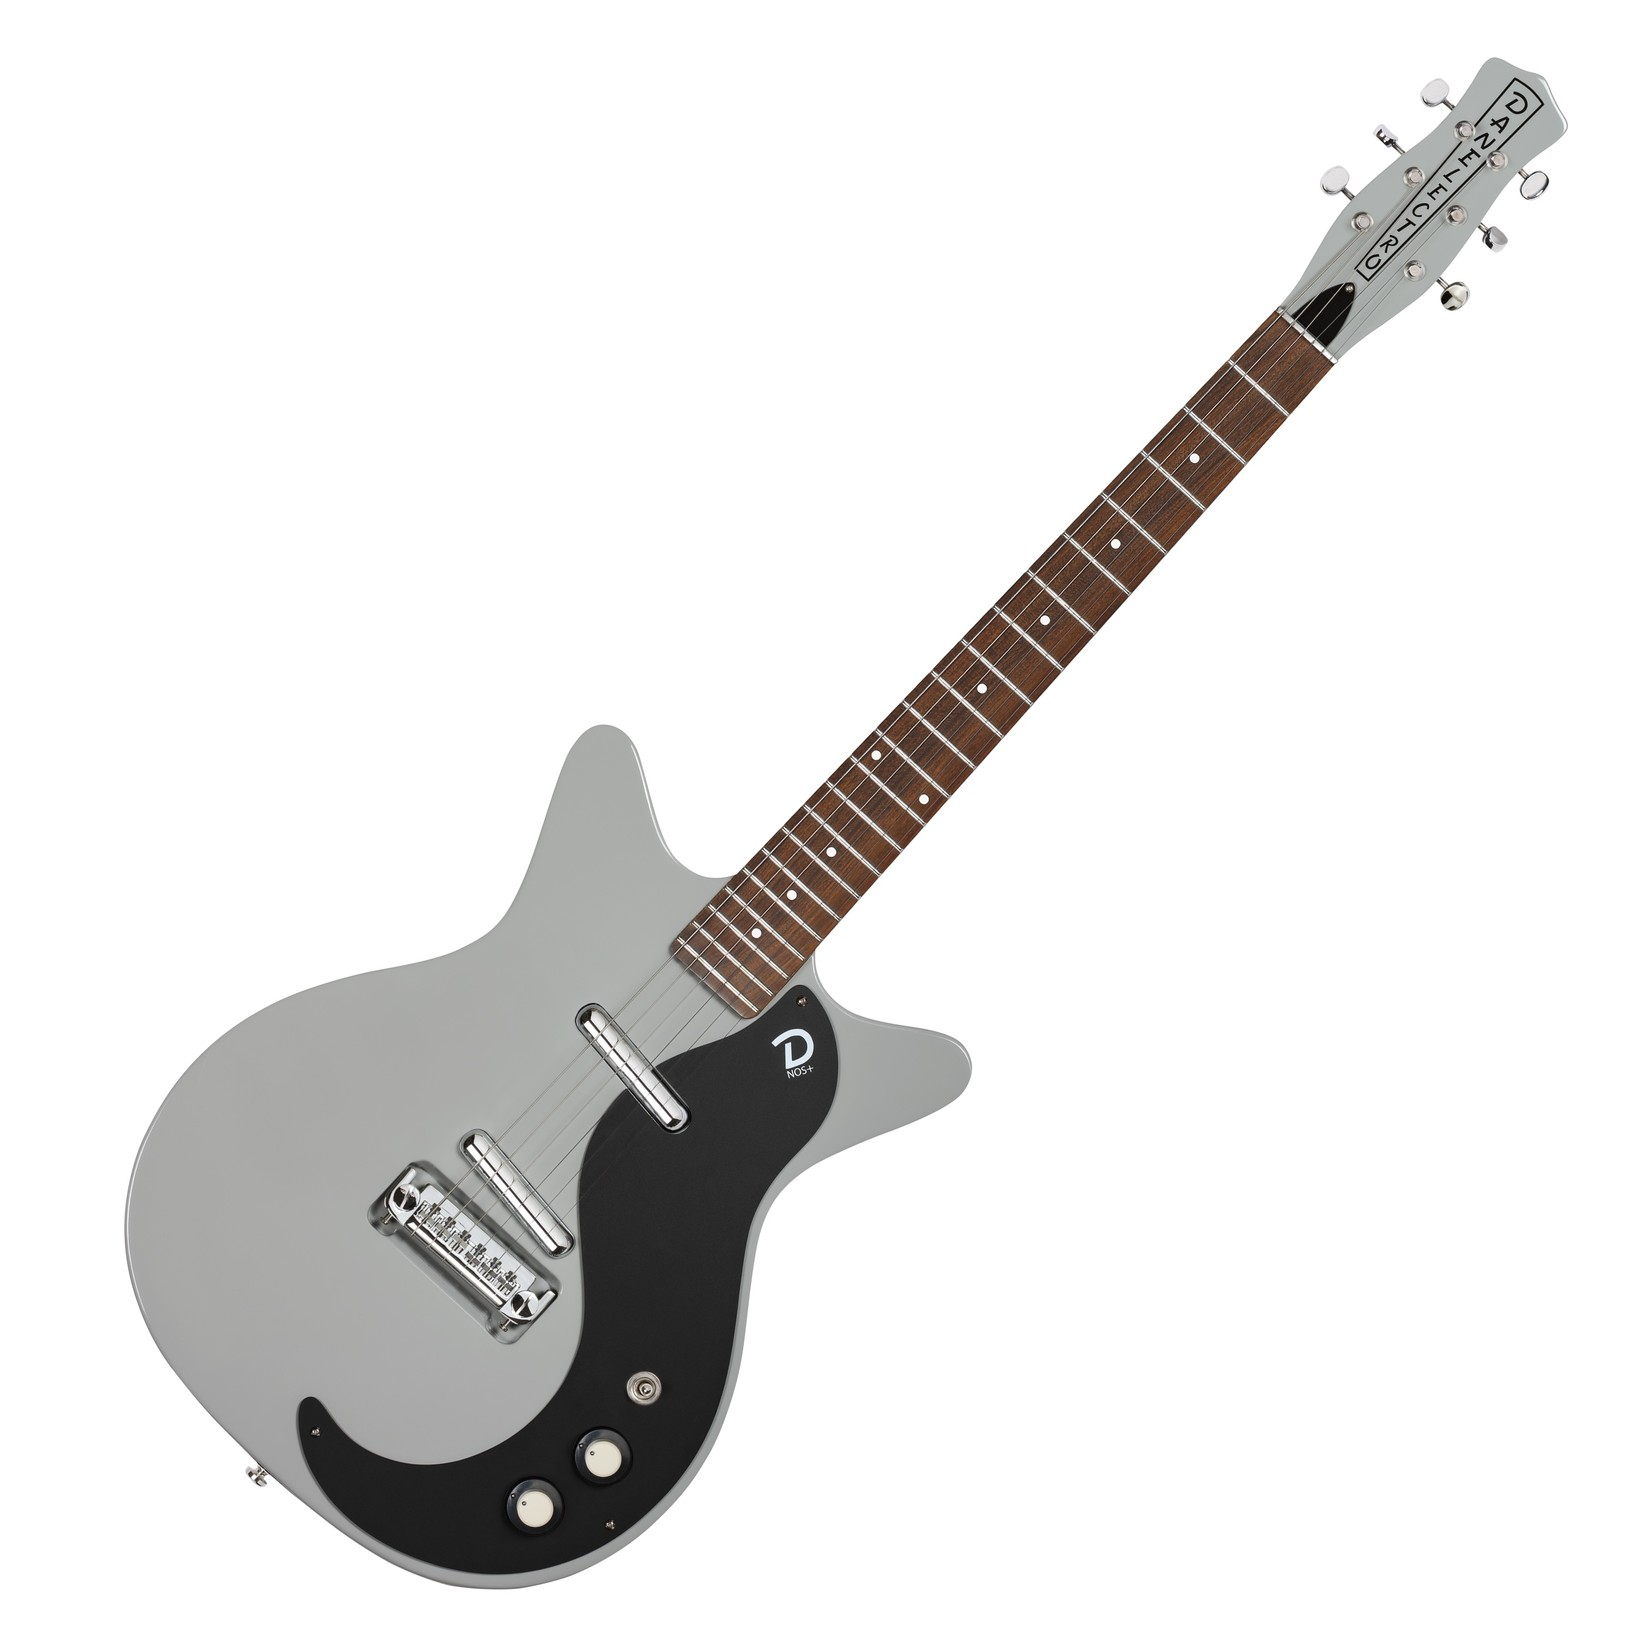 Danelectro Danelectro '59M NOS  Ice Gray with Black Pickguard (new 2020 color) +  FREE Gigbag